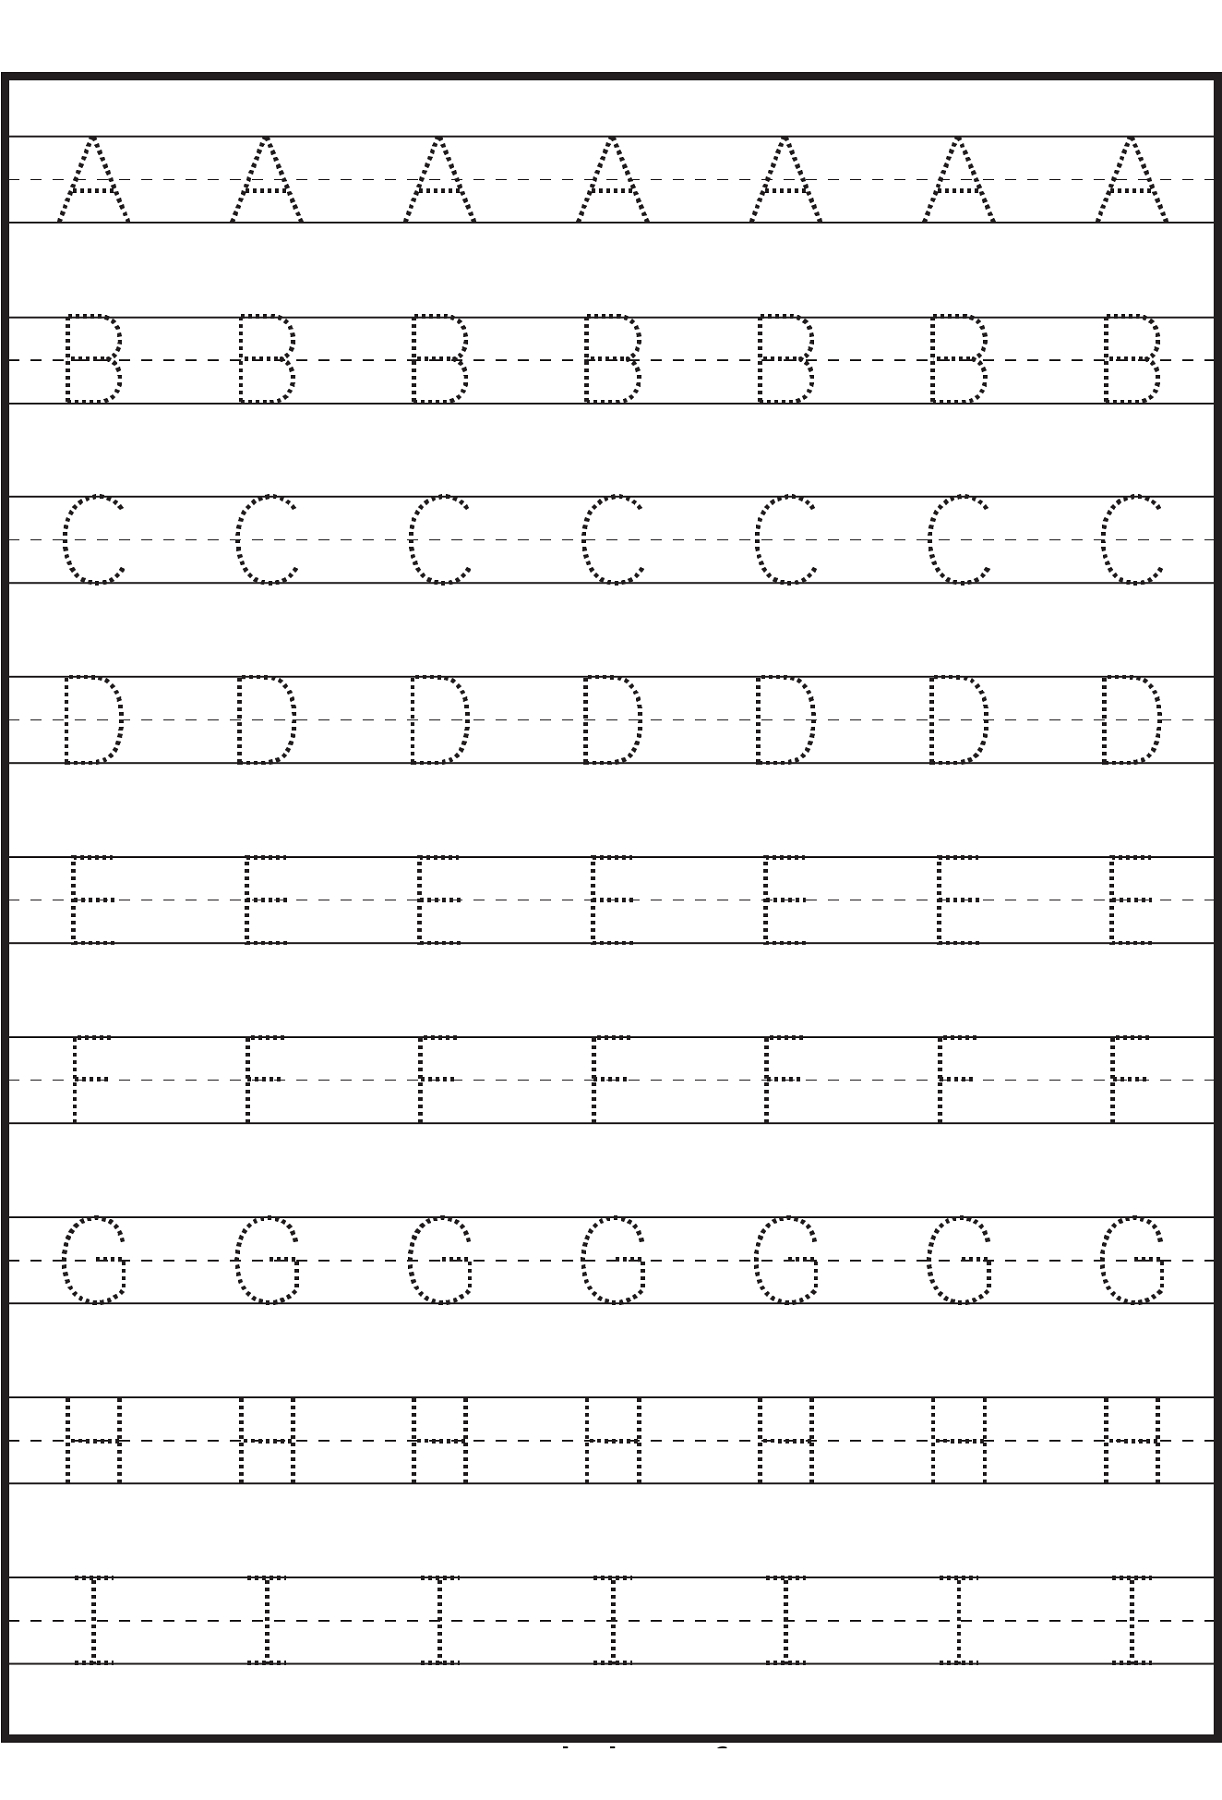 Letter Tracing Sheets Printable | Letter Tracing Worksheets pertaining to Alphabet Tracing Activities For Preschoolers